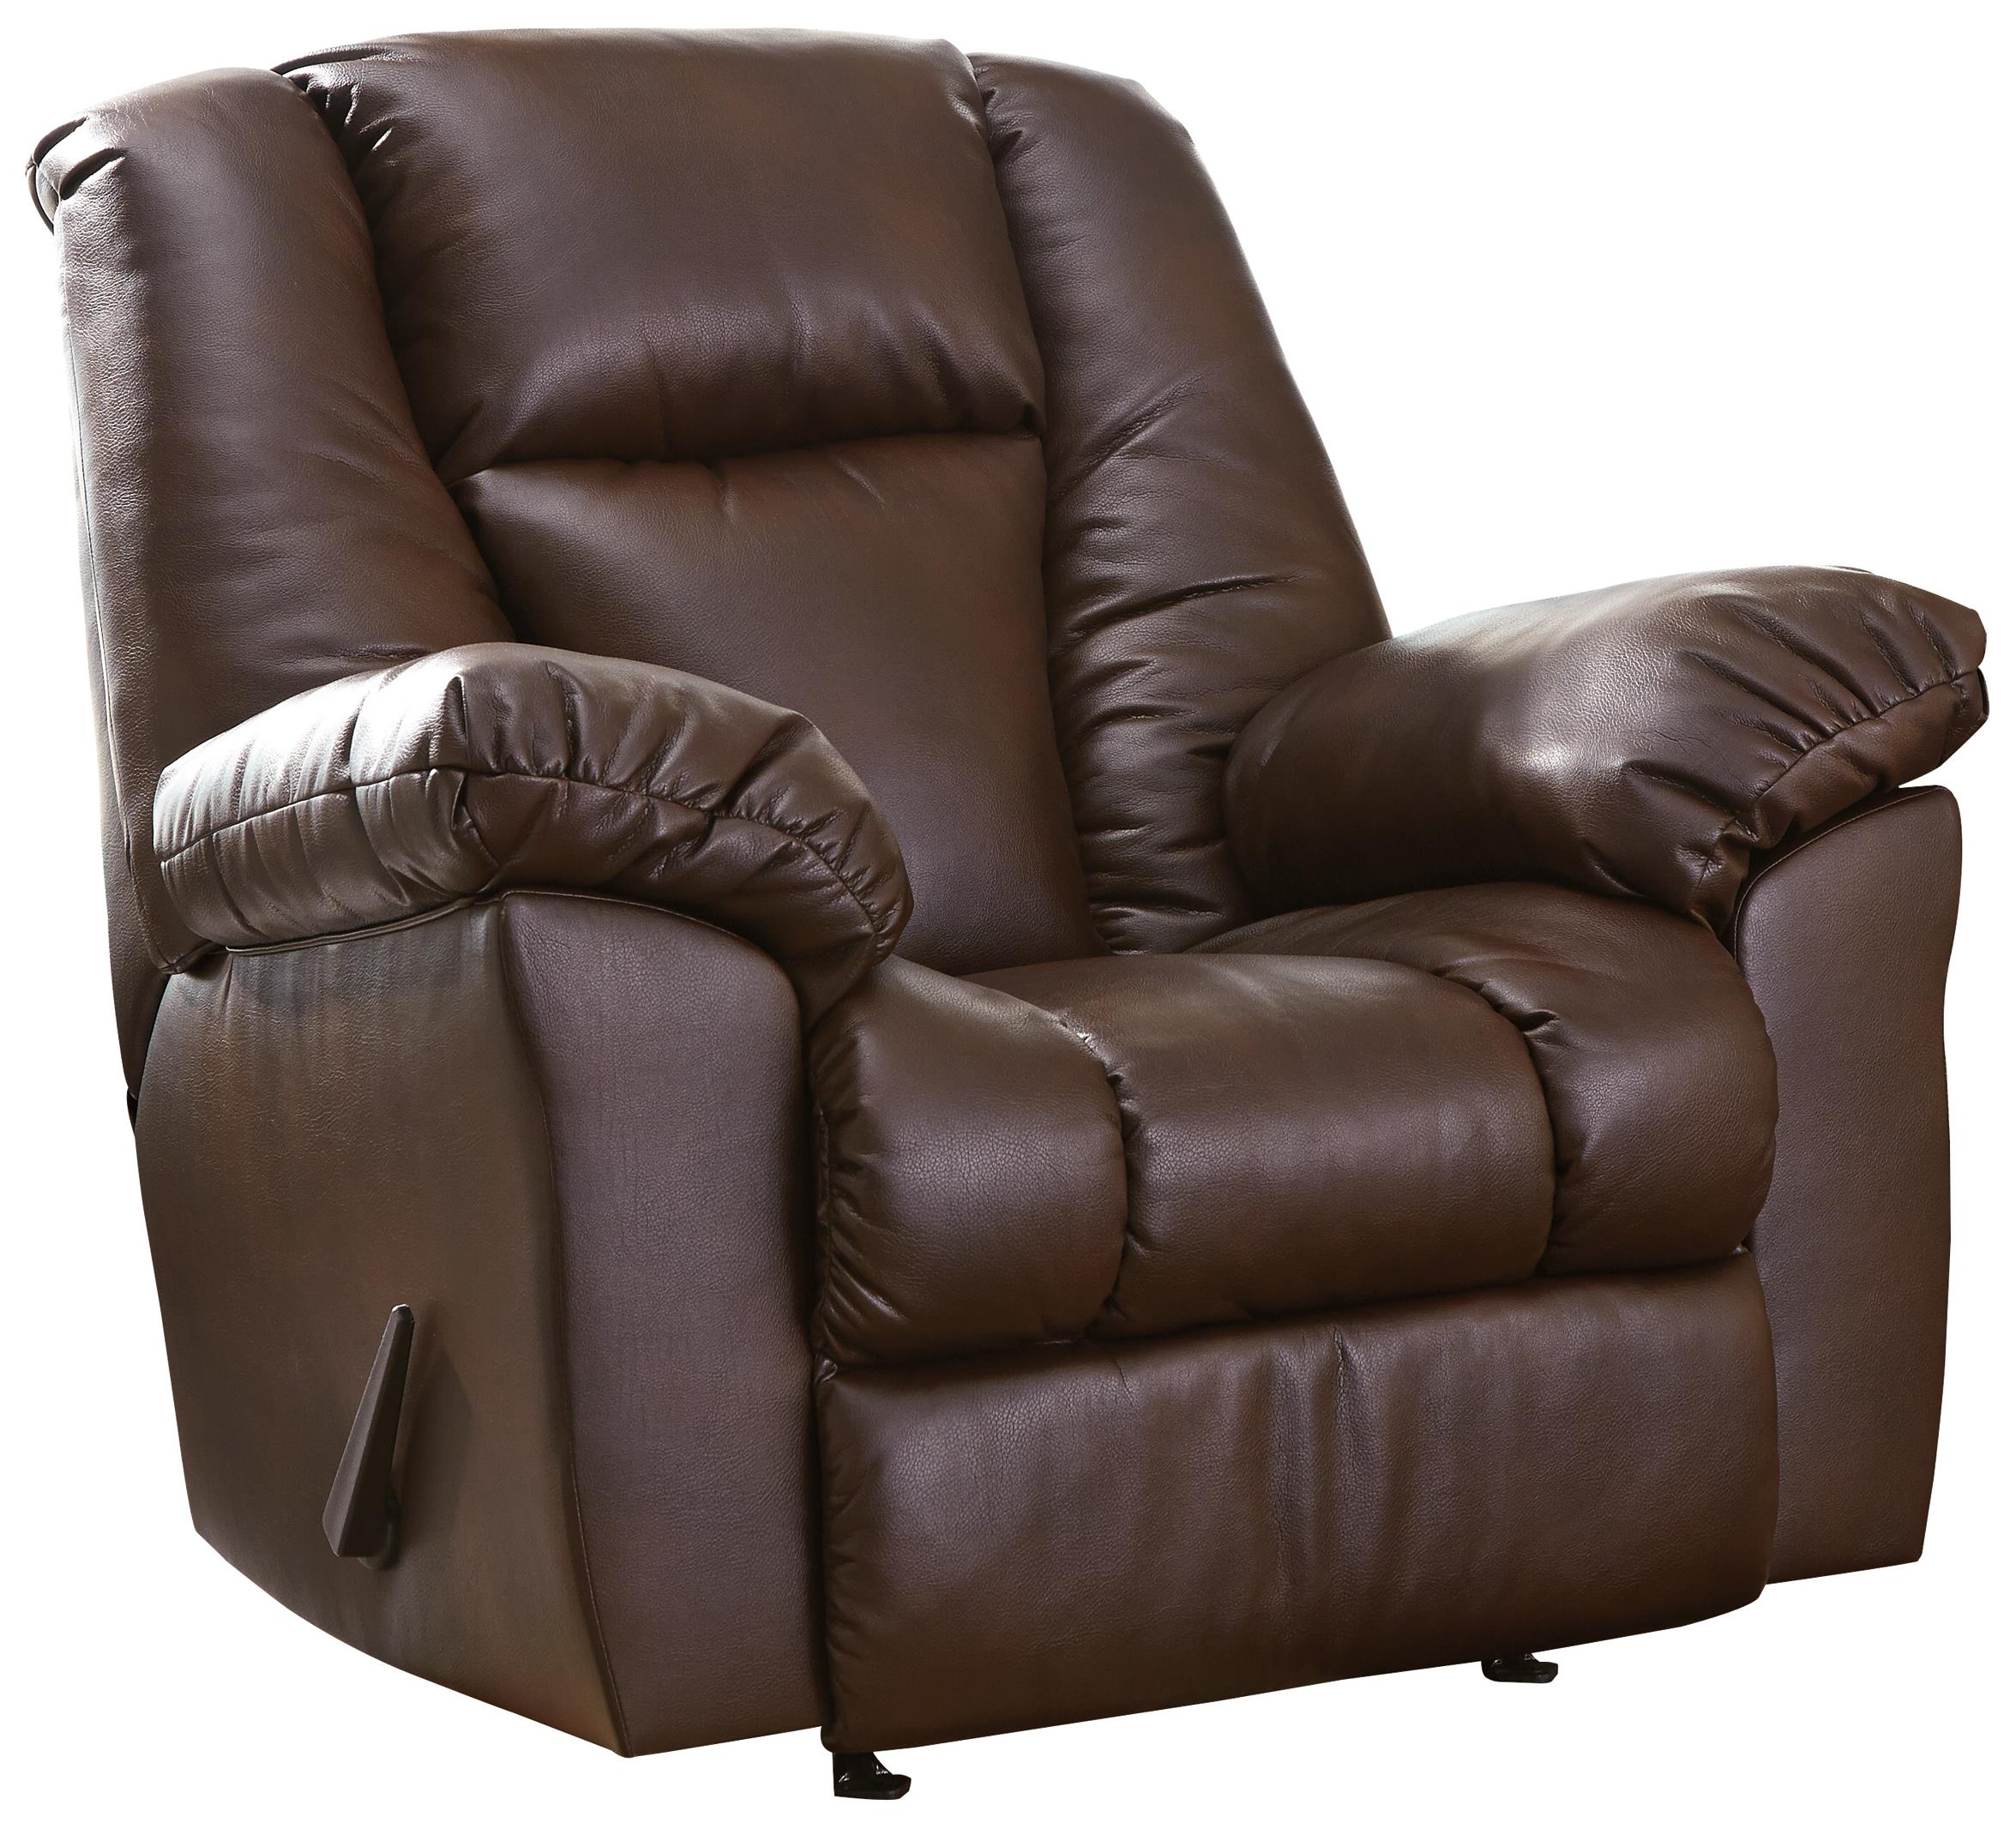 Signature Design by Ashley Knoxton Rocker Recliner - Item Number: 6050725